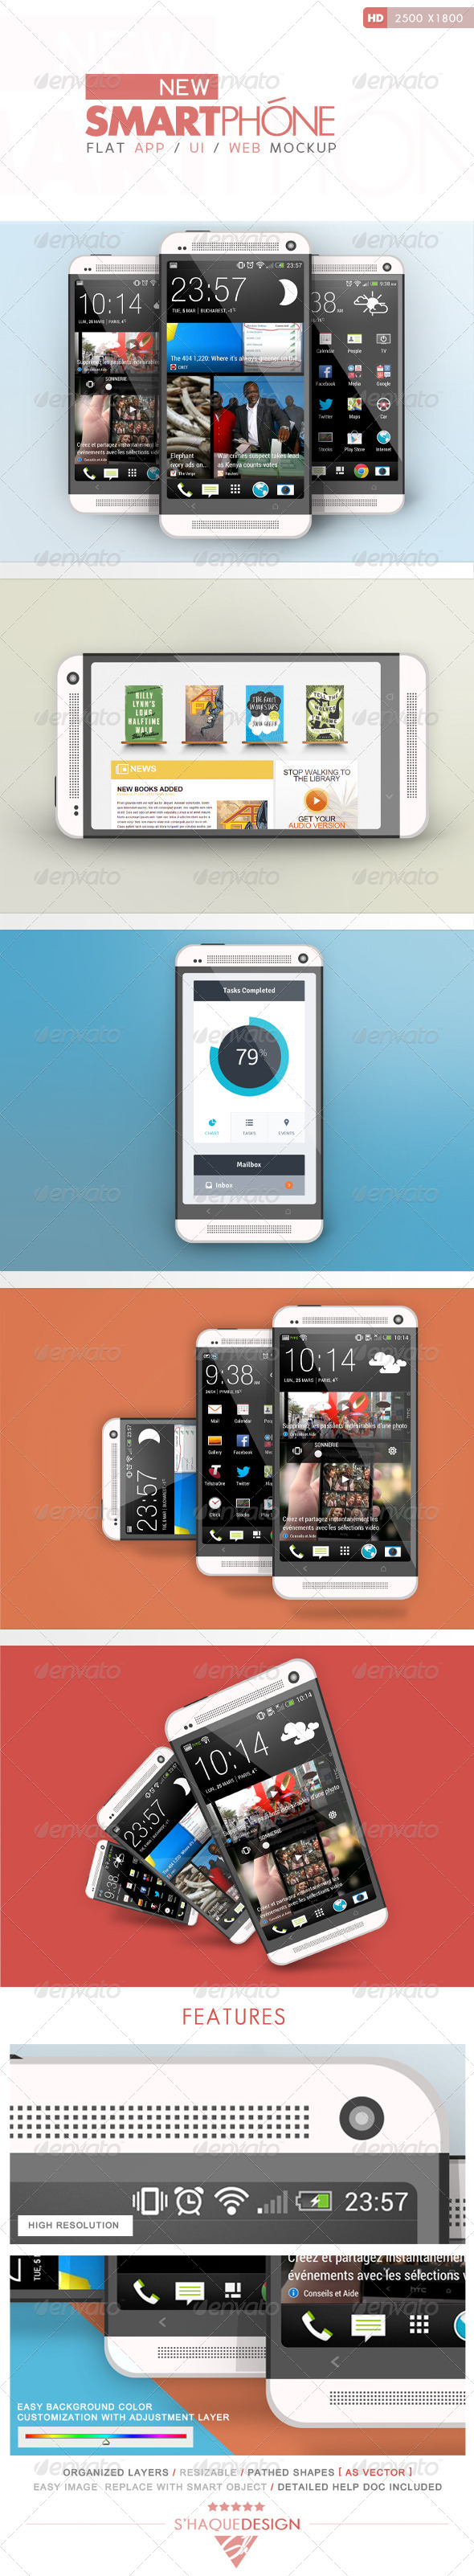 Flat Phone Mock Up - Mobile Displays